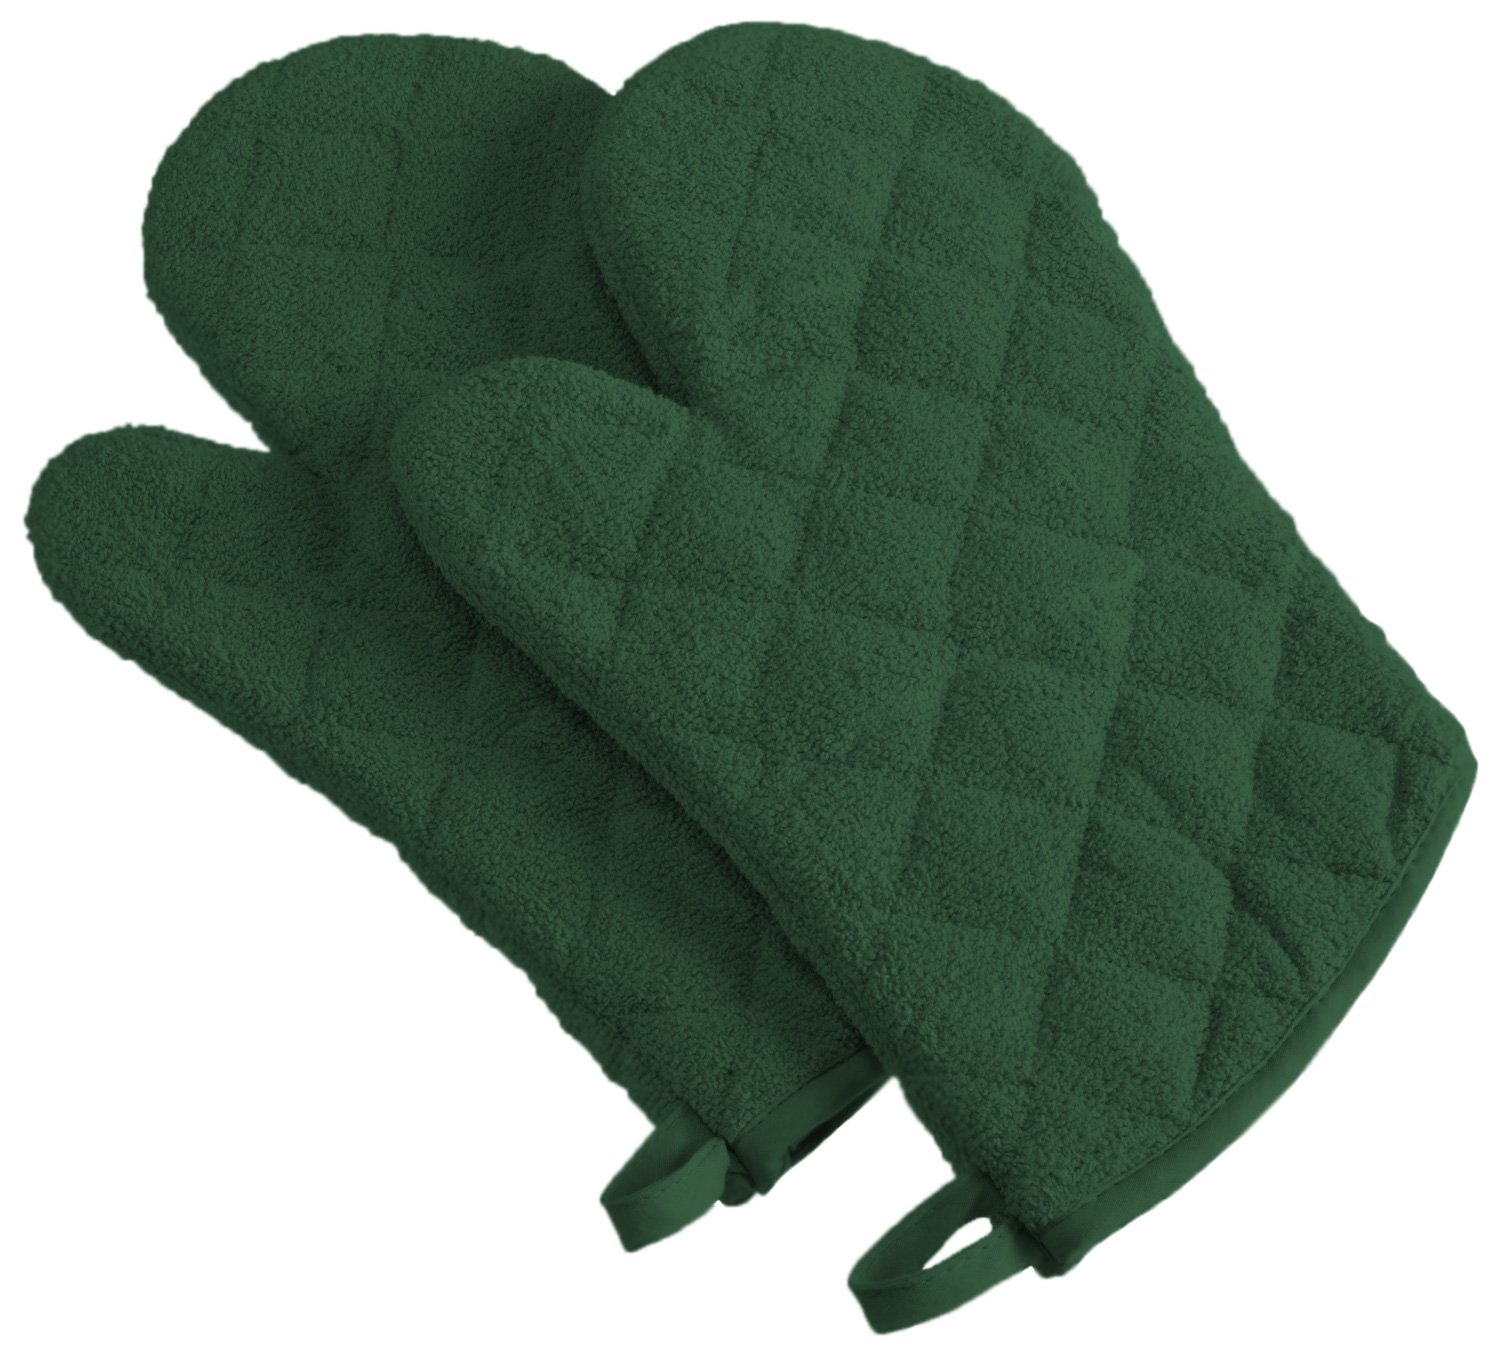 DII 100% Cotton, Machine Washable, Everyday Kitchen Basic Terry Ovenmitt Set of 2, Dark Green